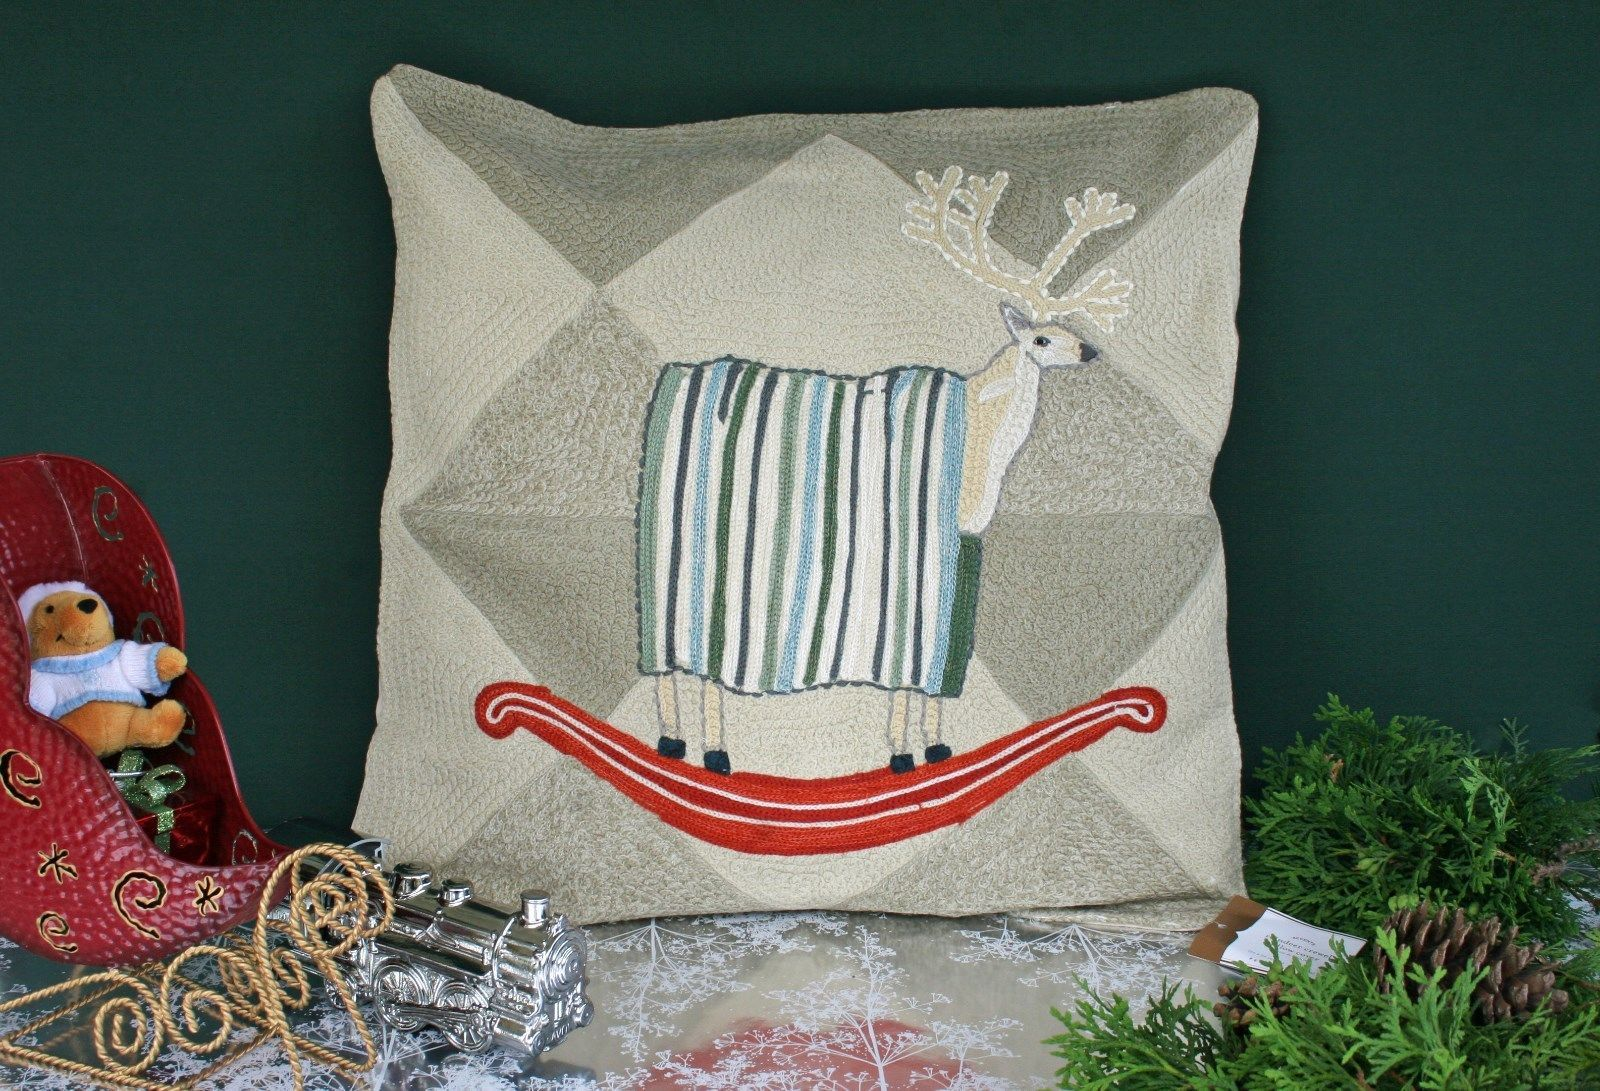 pottery barn rocking reindeer crewel embroidered pillow cover nwt on prancer - Pottery Barn Pillow Covers